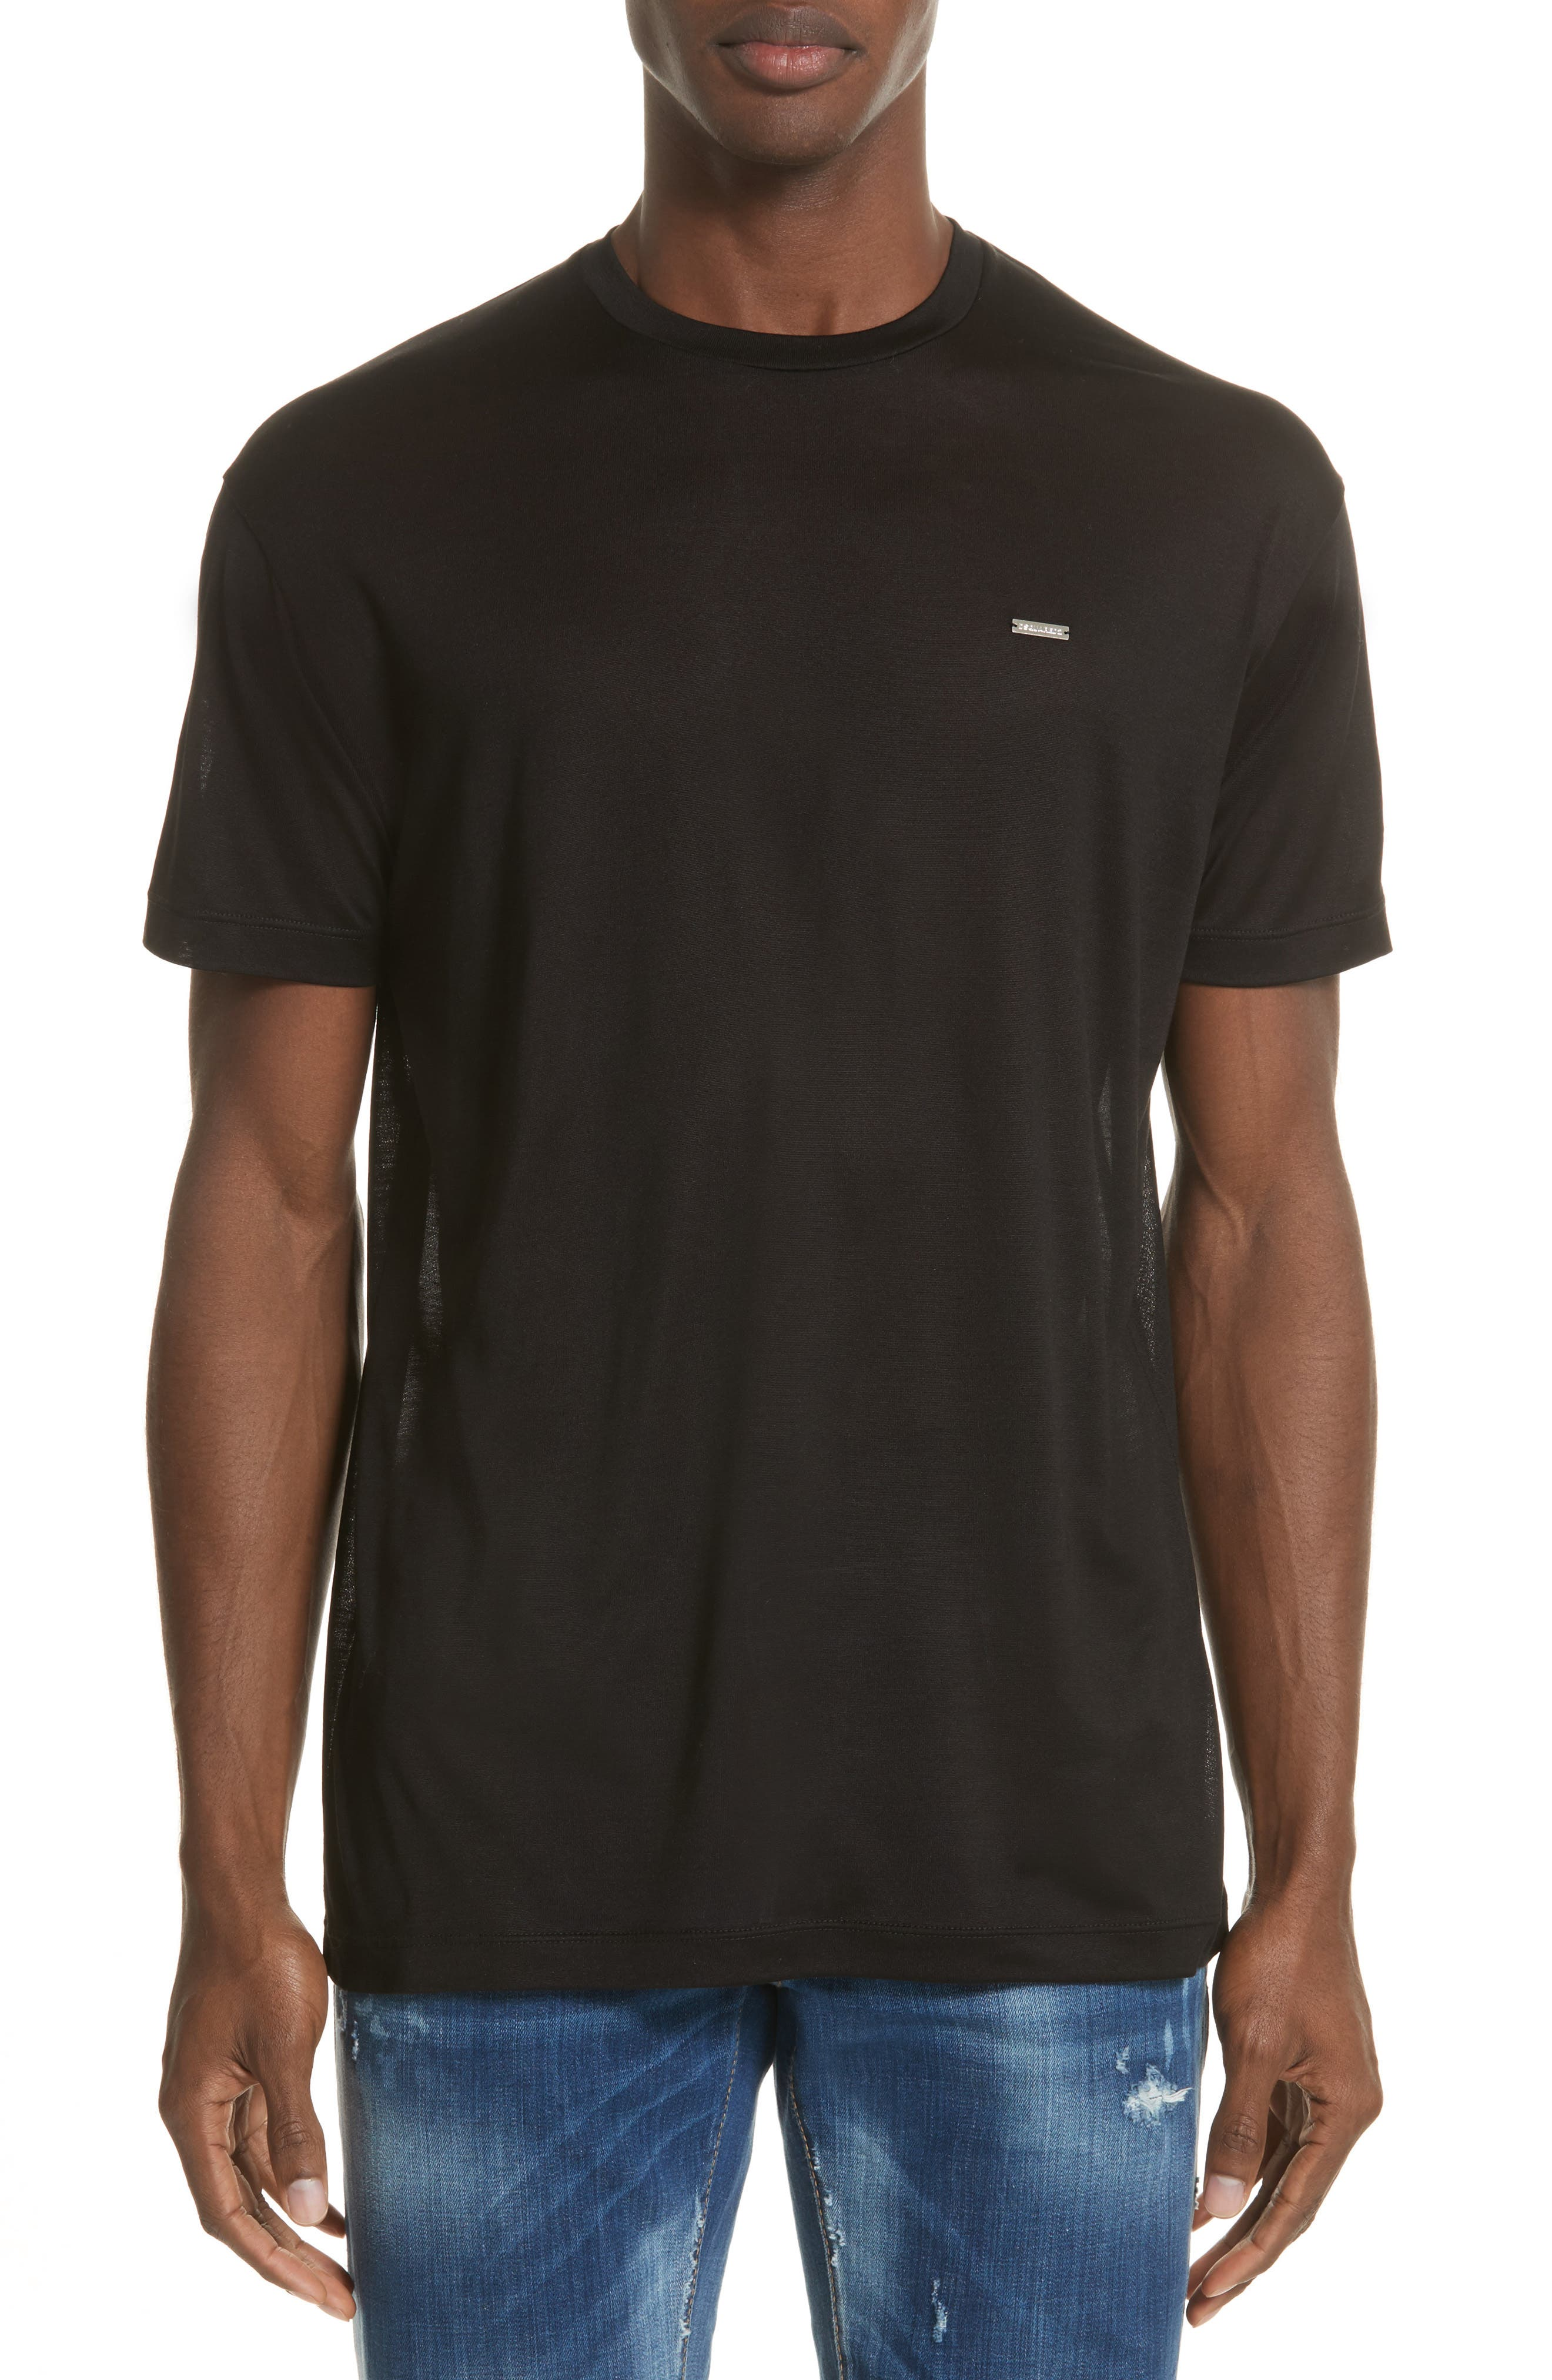 Alternate Image 1 Selected - Dsquared2 Silk Jersey T-Shirt